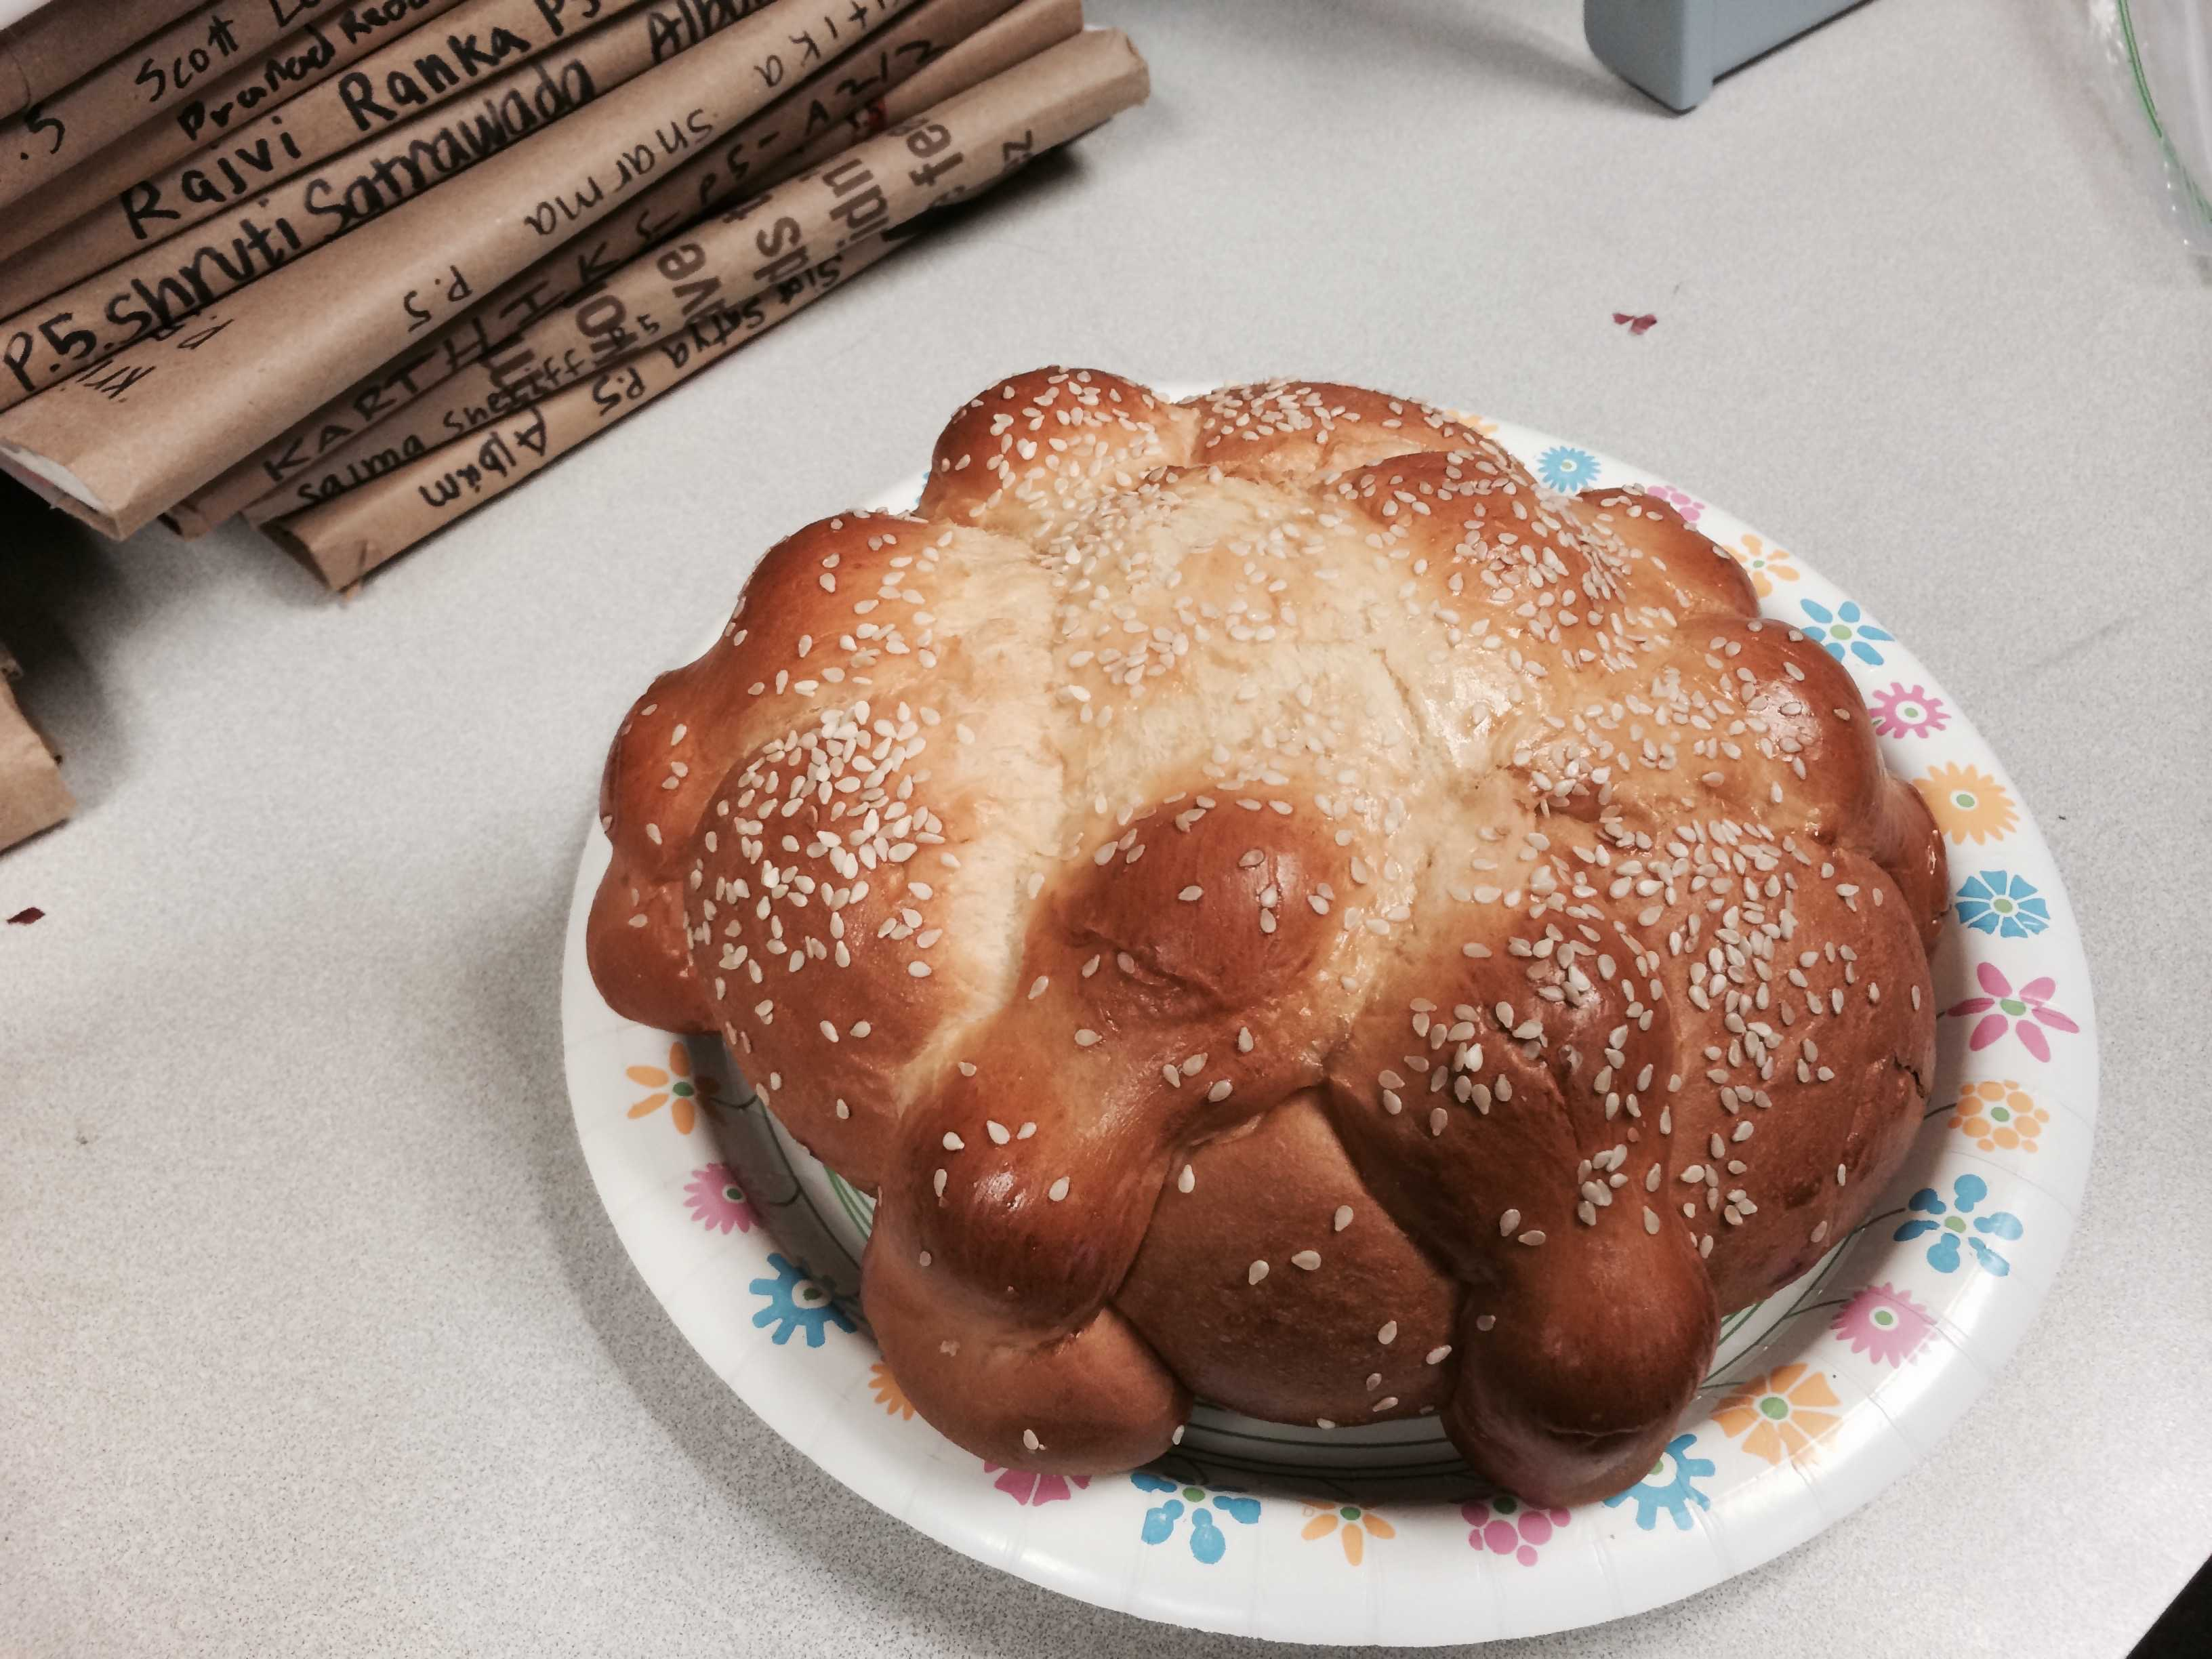 Pan de Muertos is a sweet bread eaten on special occasion in Latin America. Spanish Honor Society students celebrated Dia de los Muertos with this bread. Photo by Aditya Krishnan.